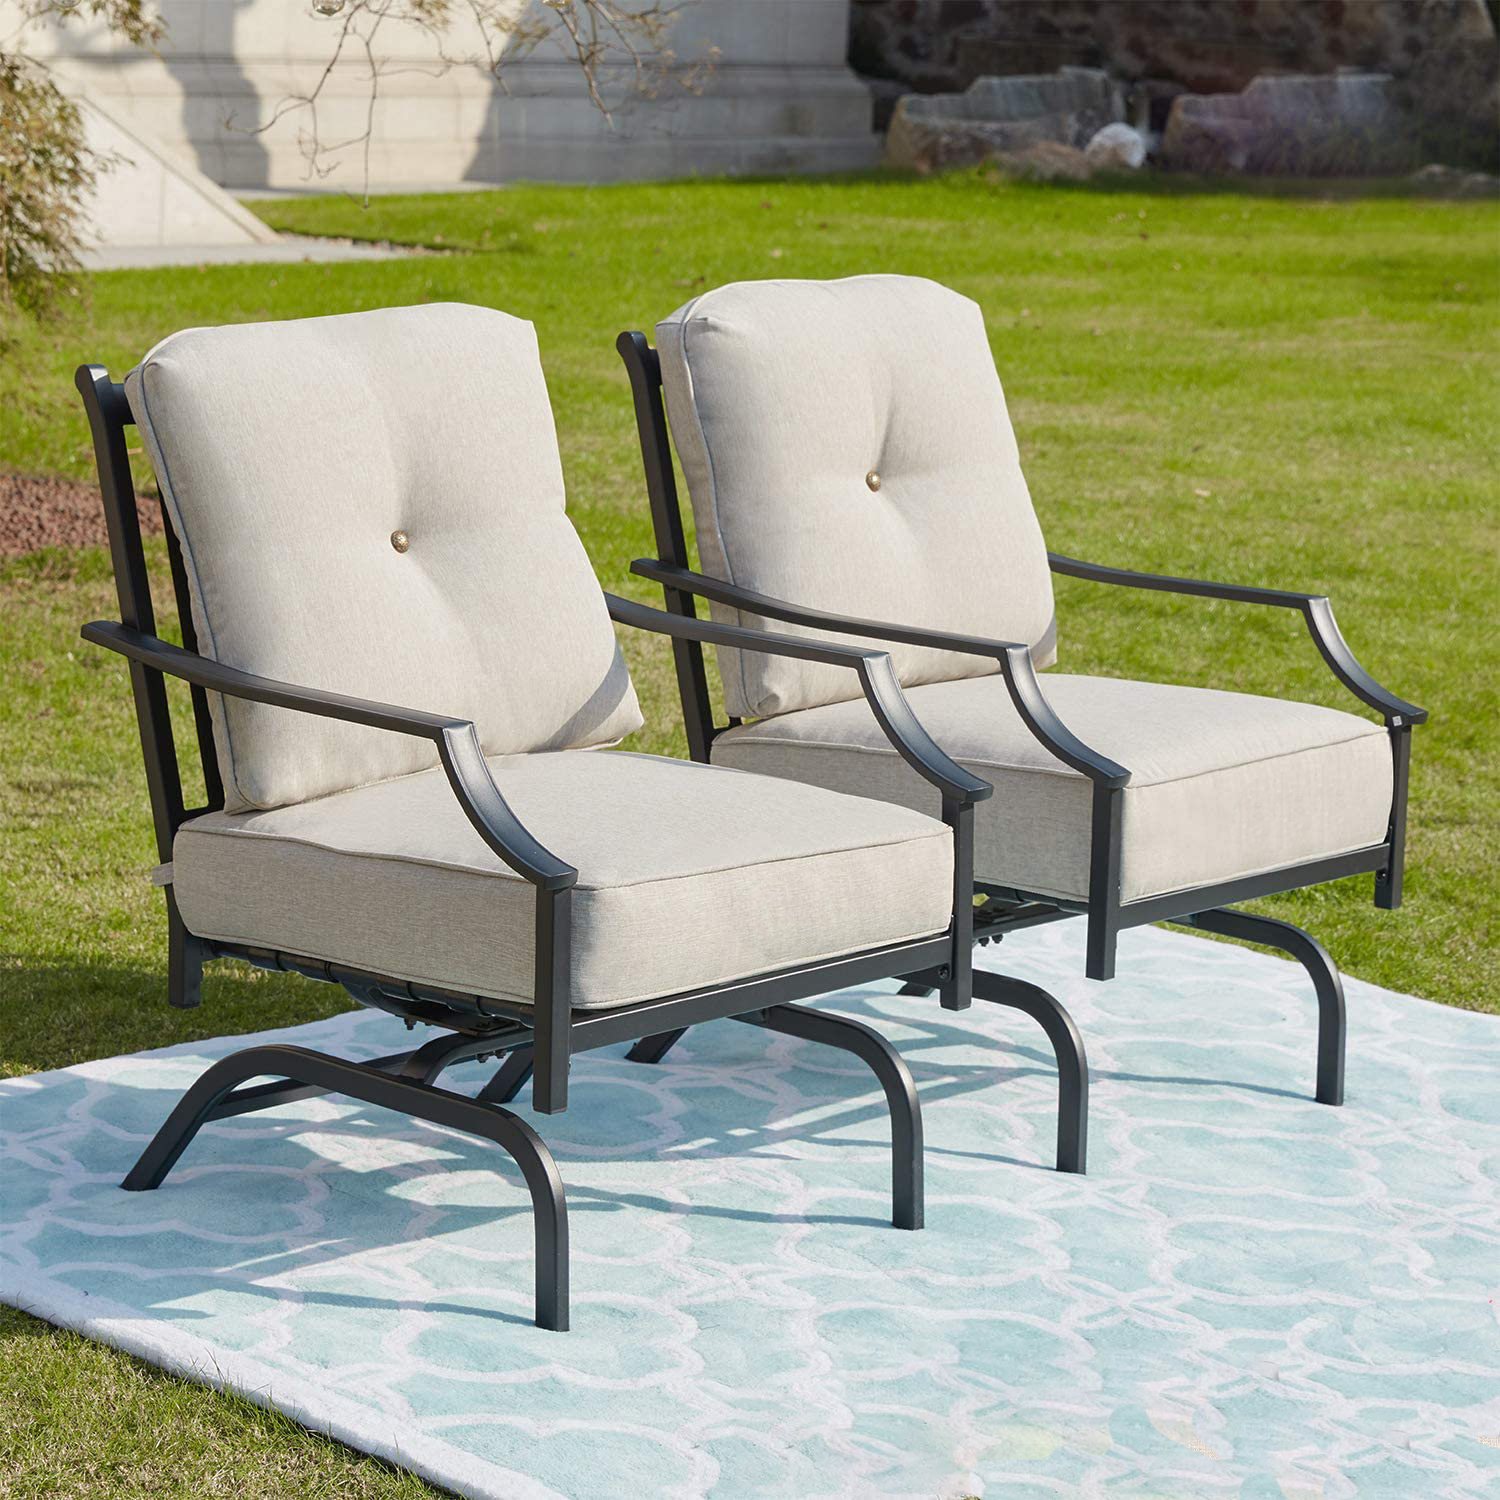 Rocking Patio Chairs Outdoor Metal Furniture Motion Spring With Regard To Rocking Sofa Chairs (View 8 of 15)